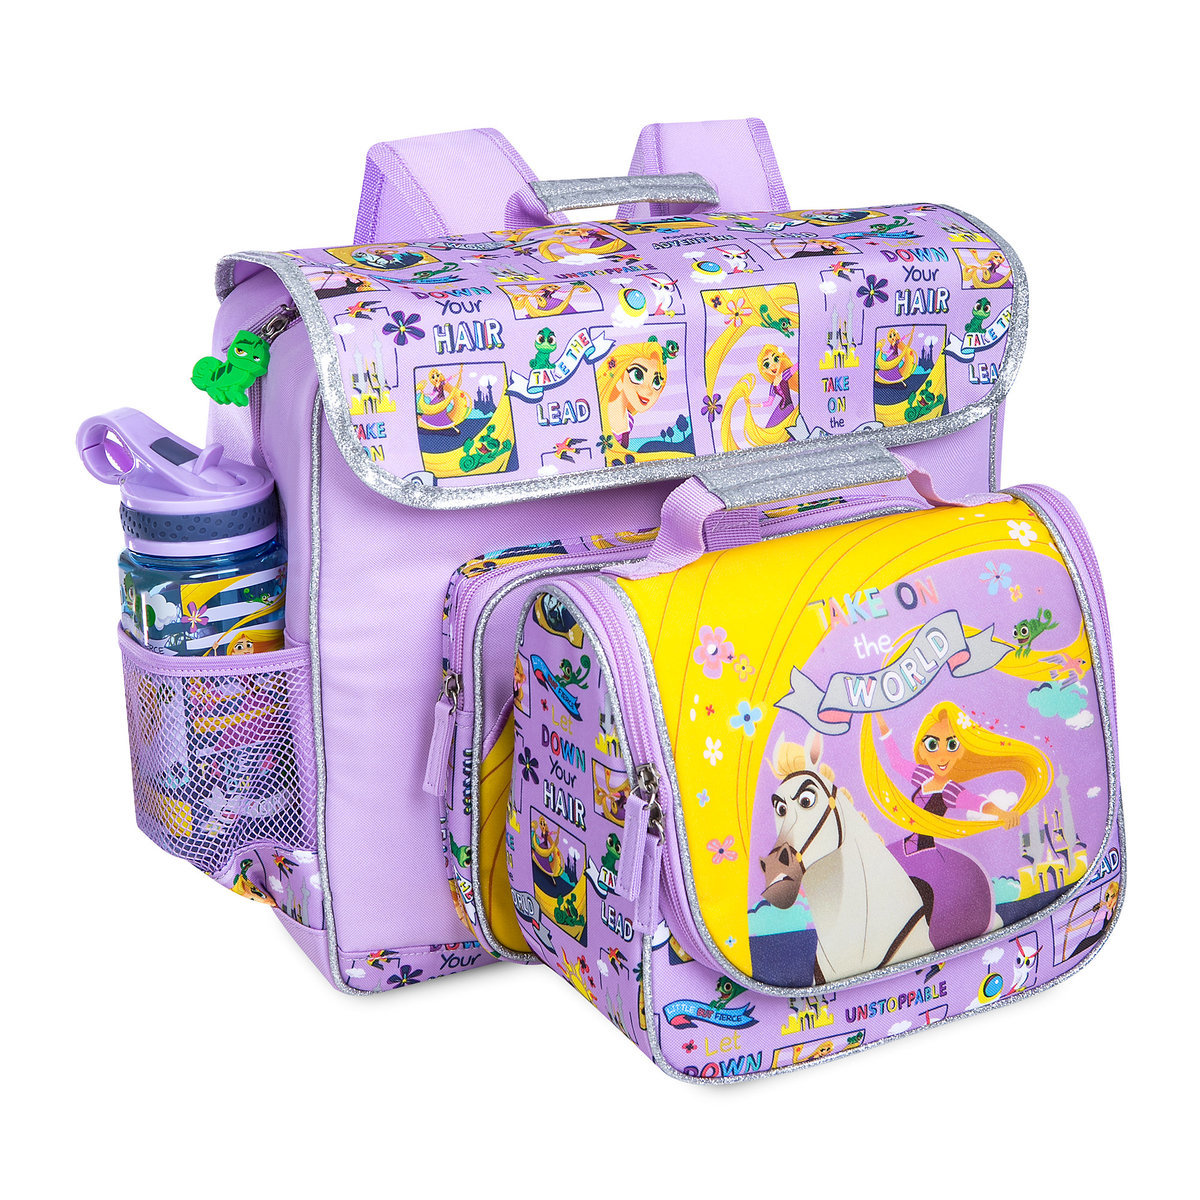 016ae1b7d48 Product Image of Rapunzel Back-to-School Collection   1